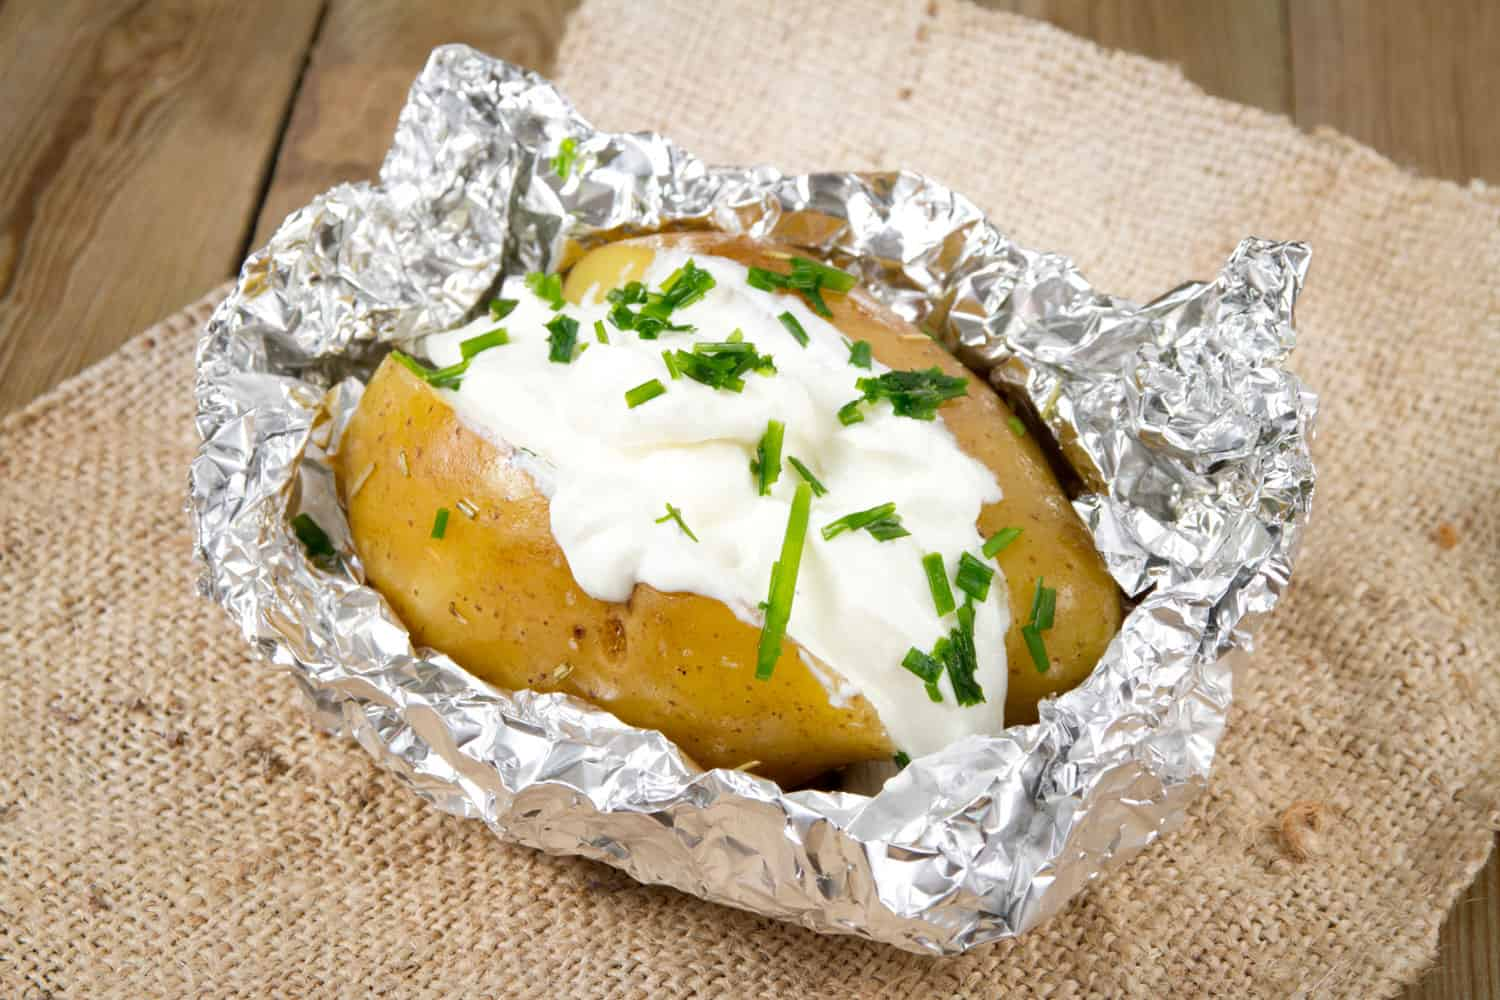 baked potato with chives